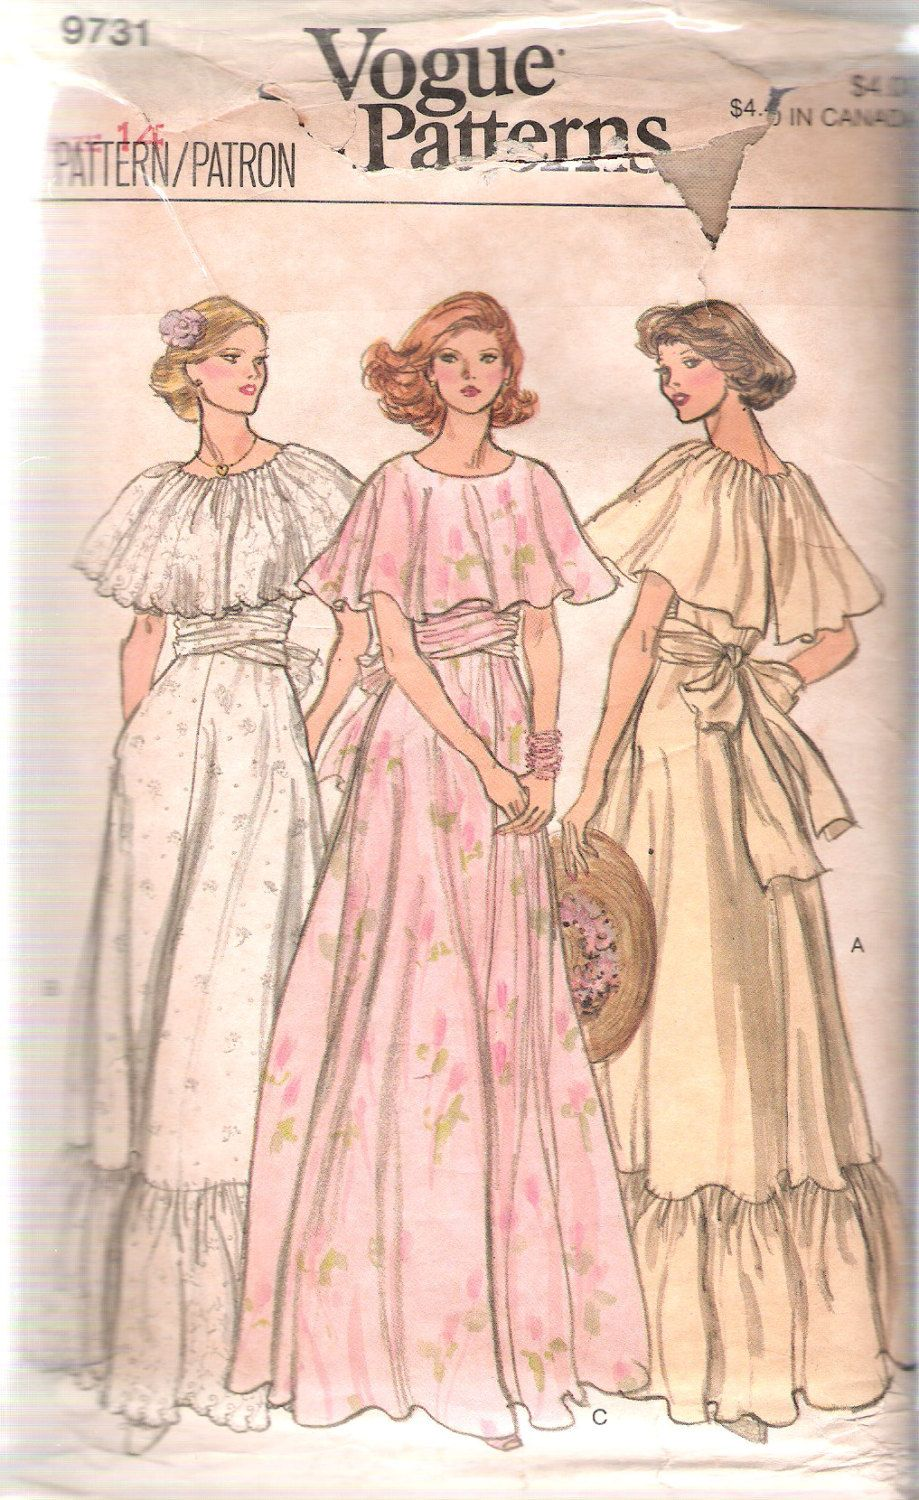 "Vintage 1979 Vogue 9731 Misses Long Ruffled Dress Sewing Pattern Size 14 Bust 36"" by Recycledelic1 on Etsy"